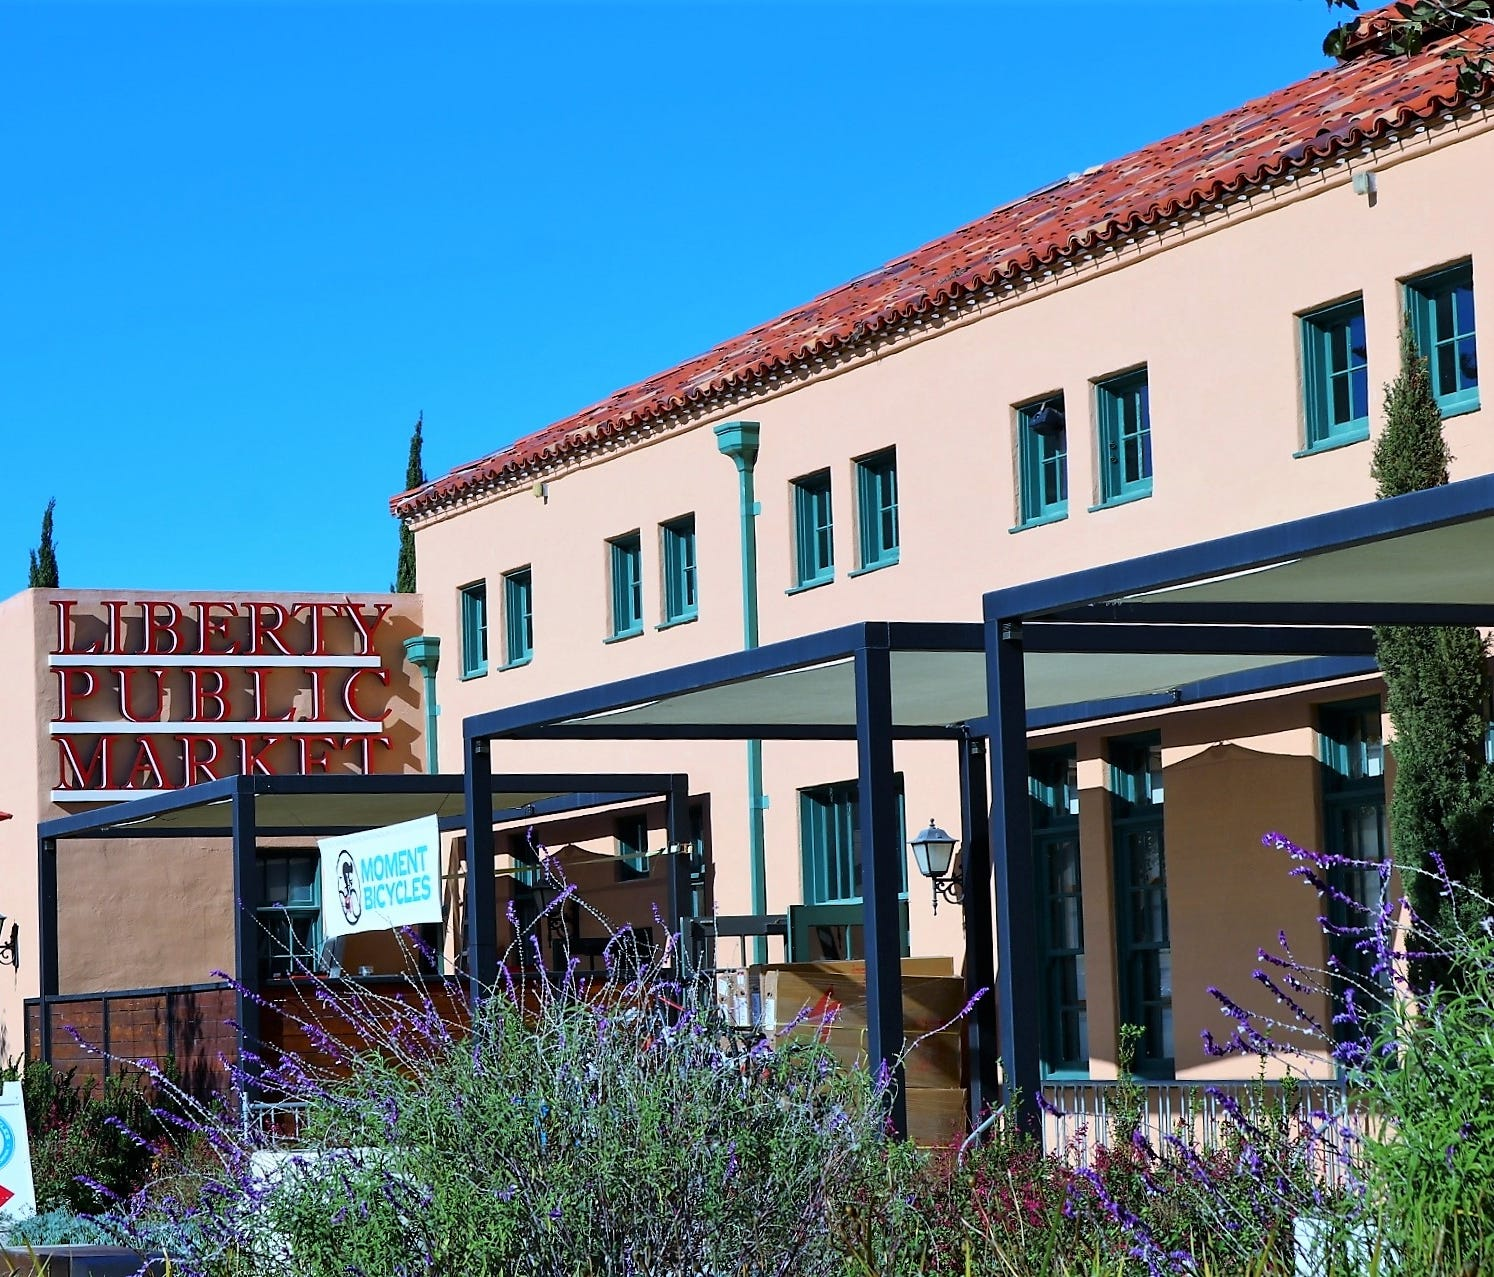 Liberty Public Market is nearing its second anniversary after opening in the historic Liberty Station in March 2016. The market showcases the building's original Spanish Colonial Revival architecture, dating back to the 1920s.